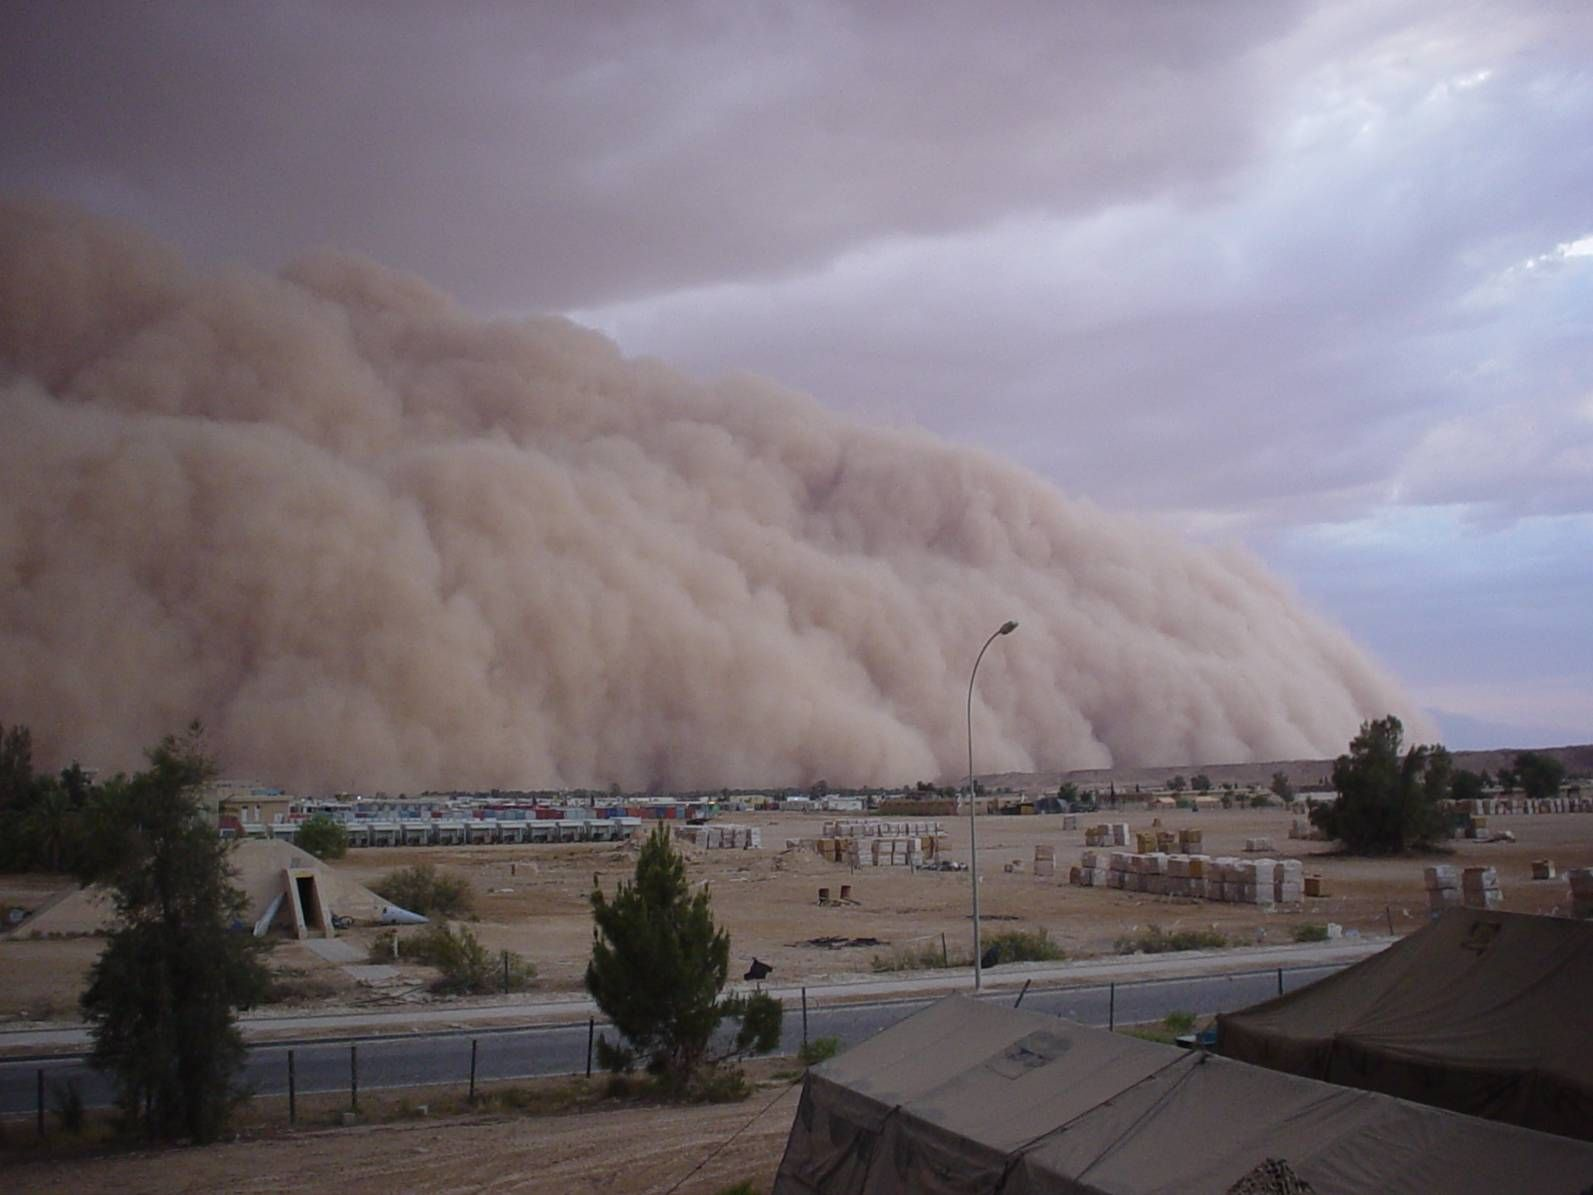 Monstrous Middle Eastern Sandstorm 1593 1195 With Images